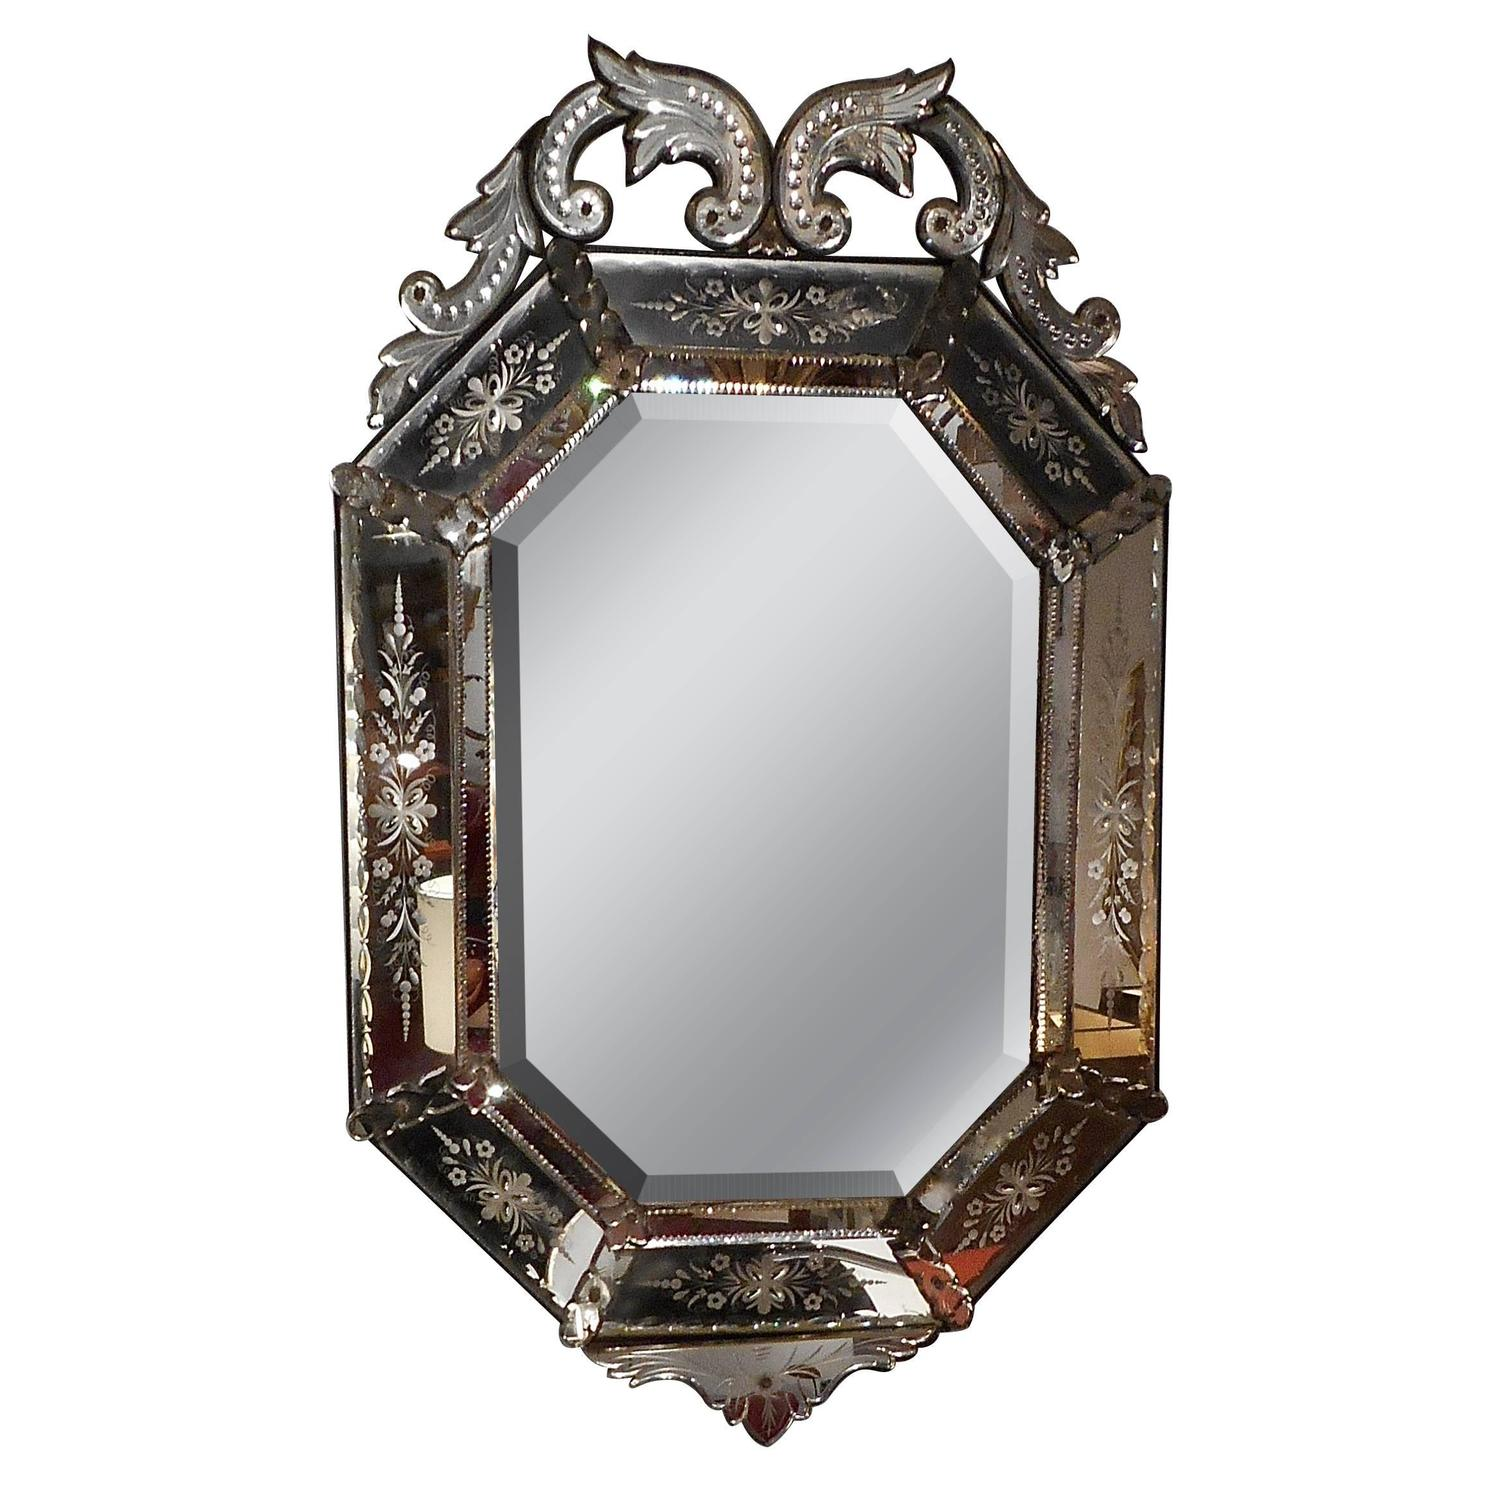 Antique venitian mirror at 1stdibs for 207 haute antiques